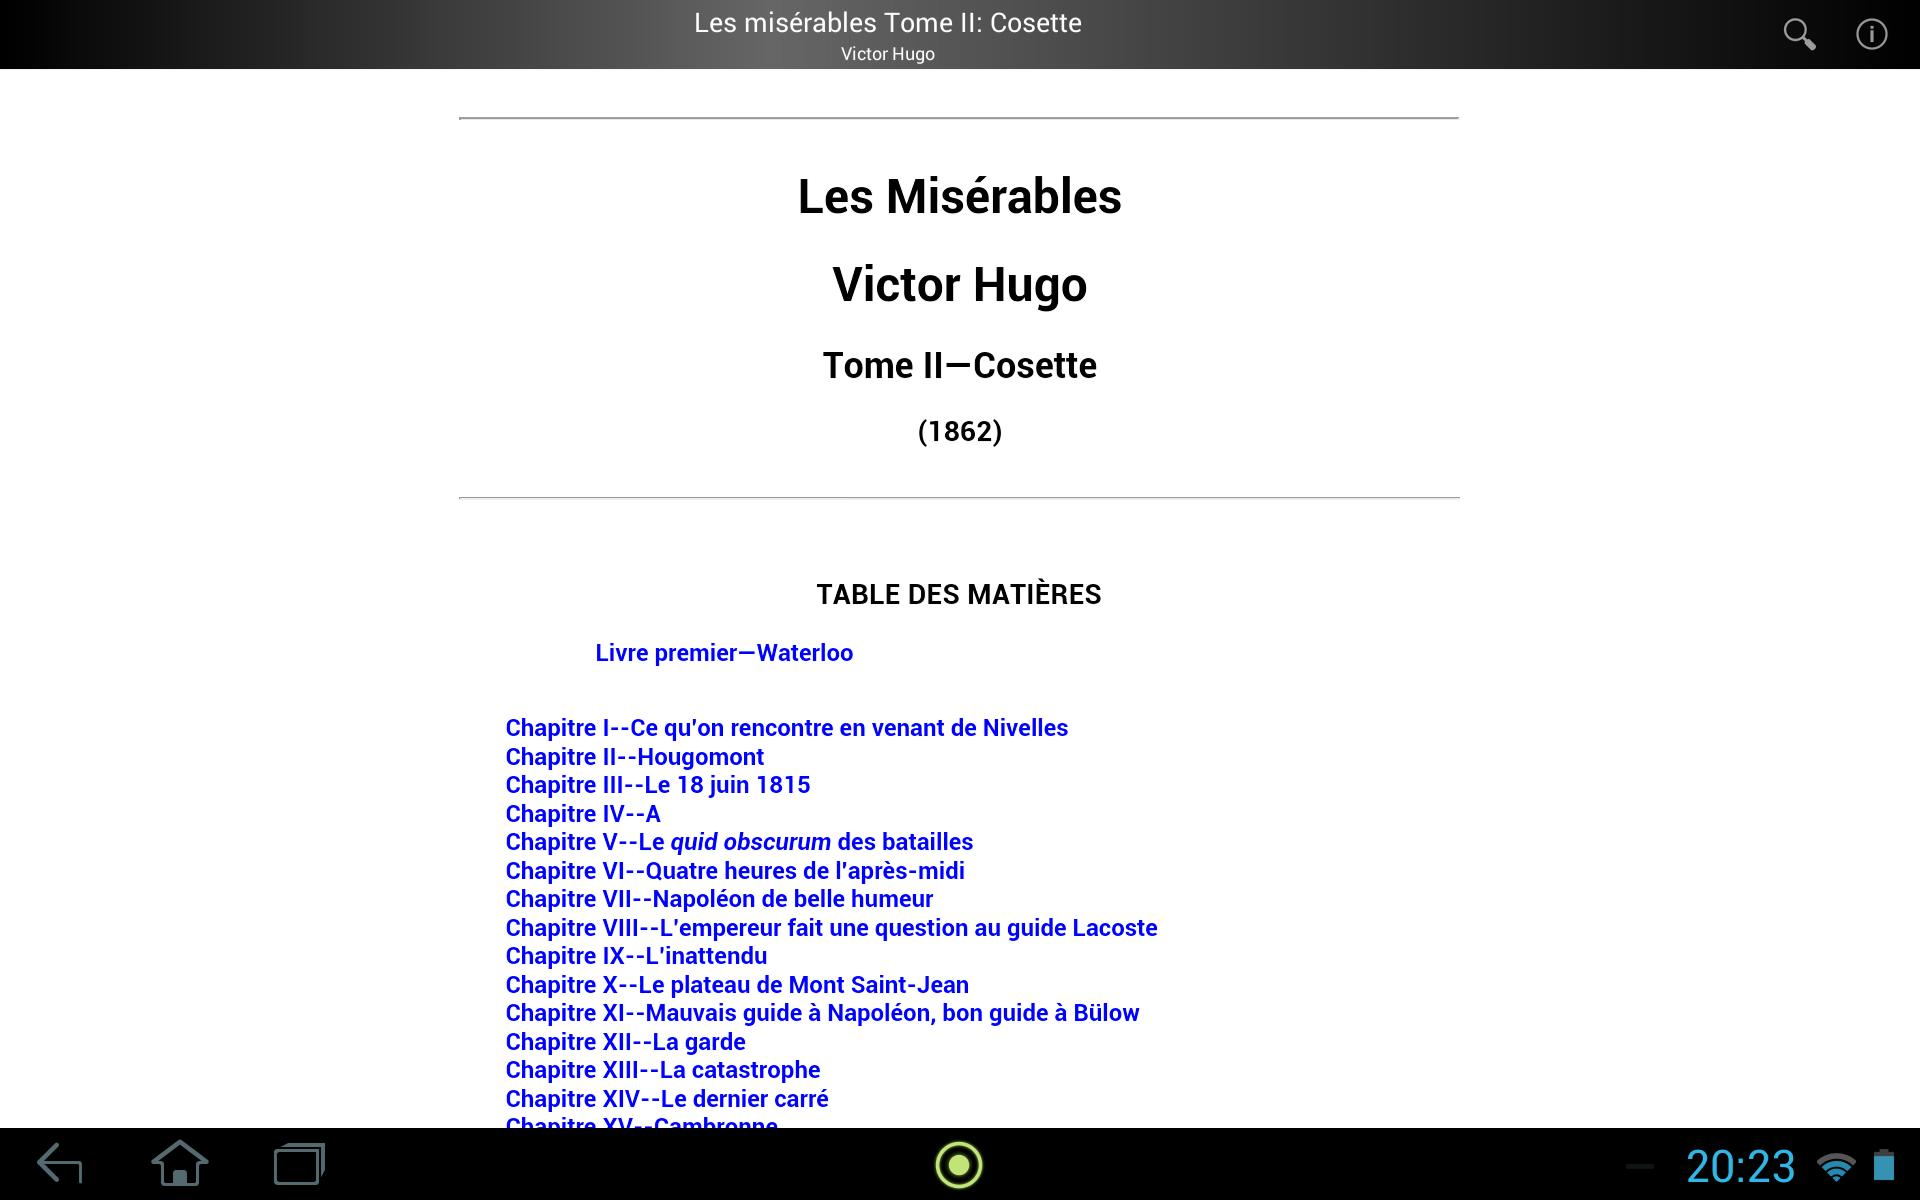 Les Miserables Tome 2 For Android Apk Download